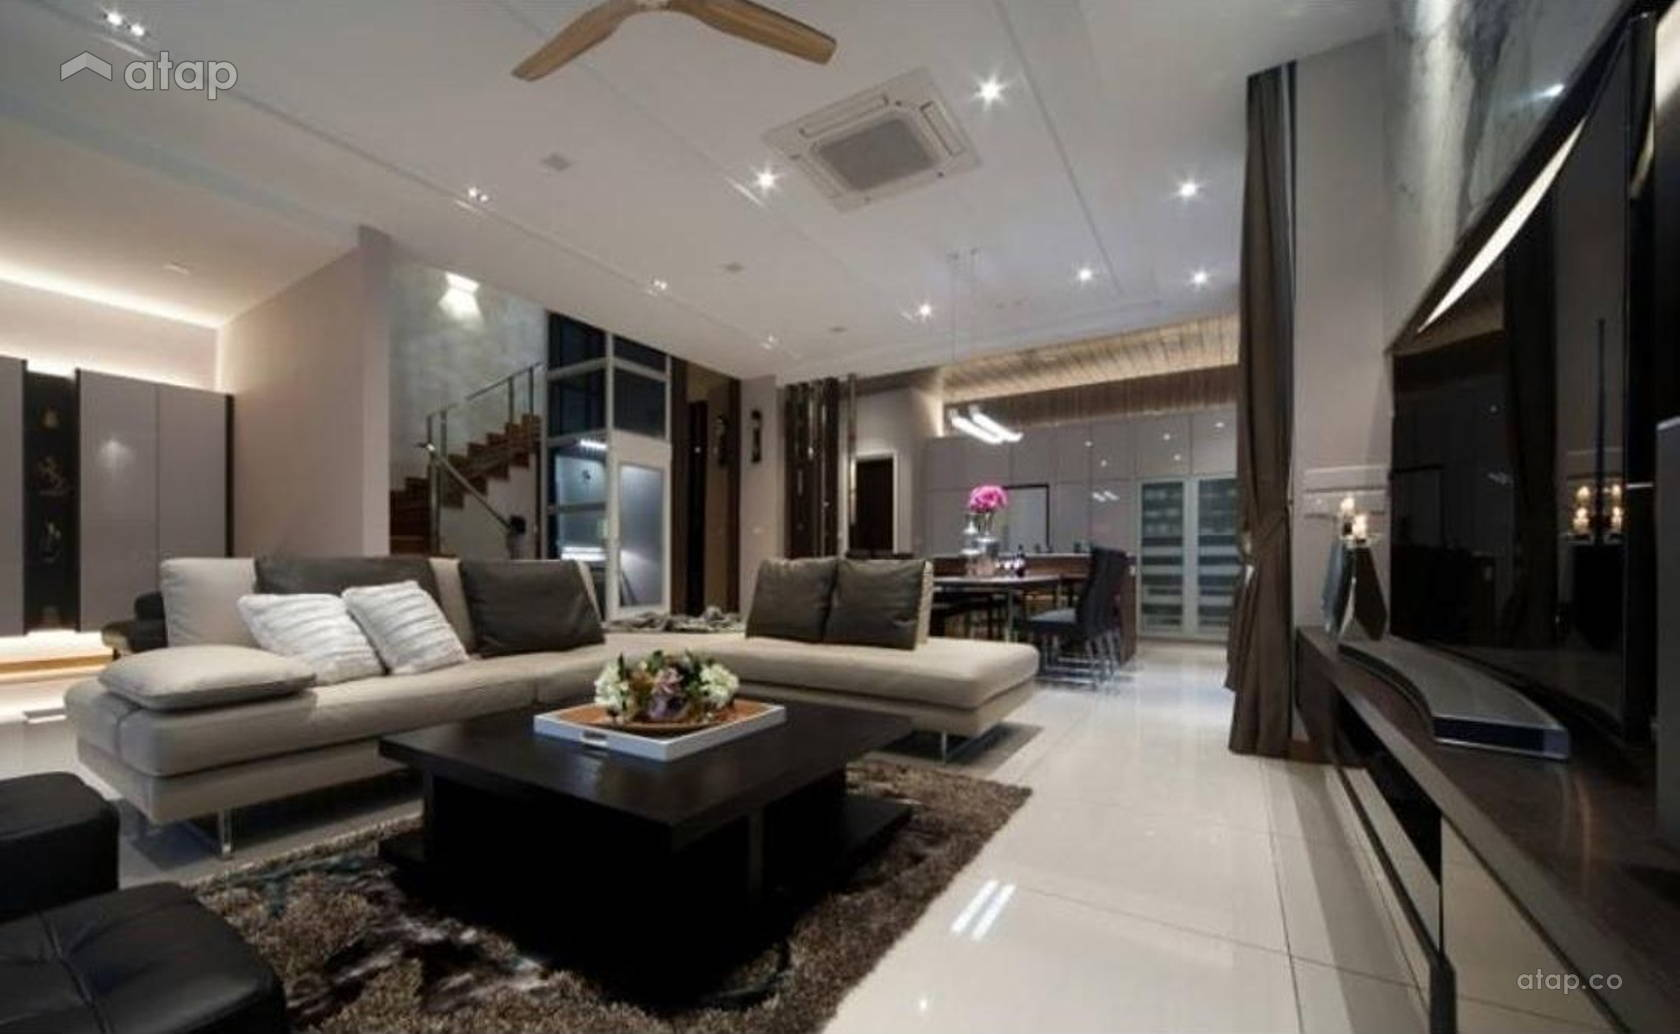 Semi D Interior Design Renovation Ideas Photos And Price In Malaysia Atap Co